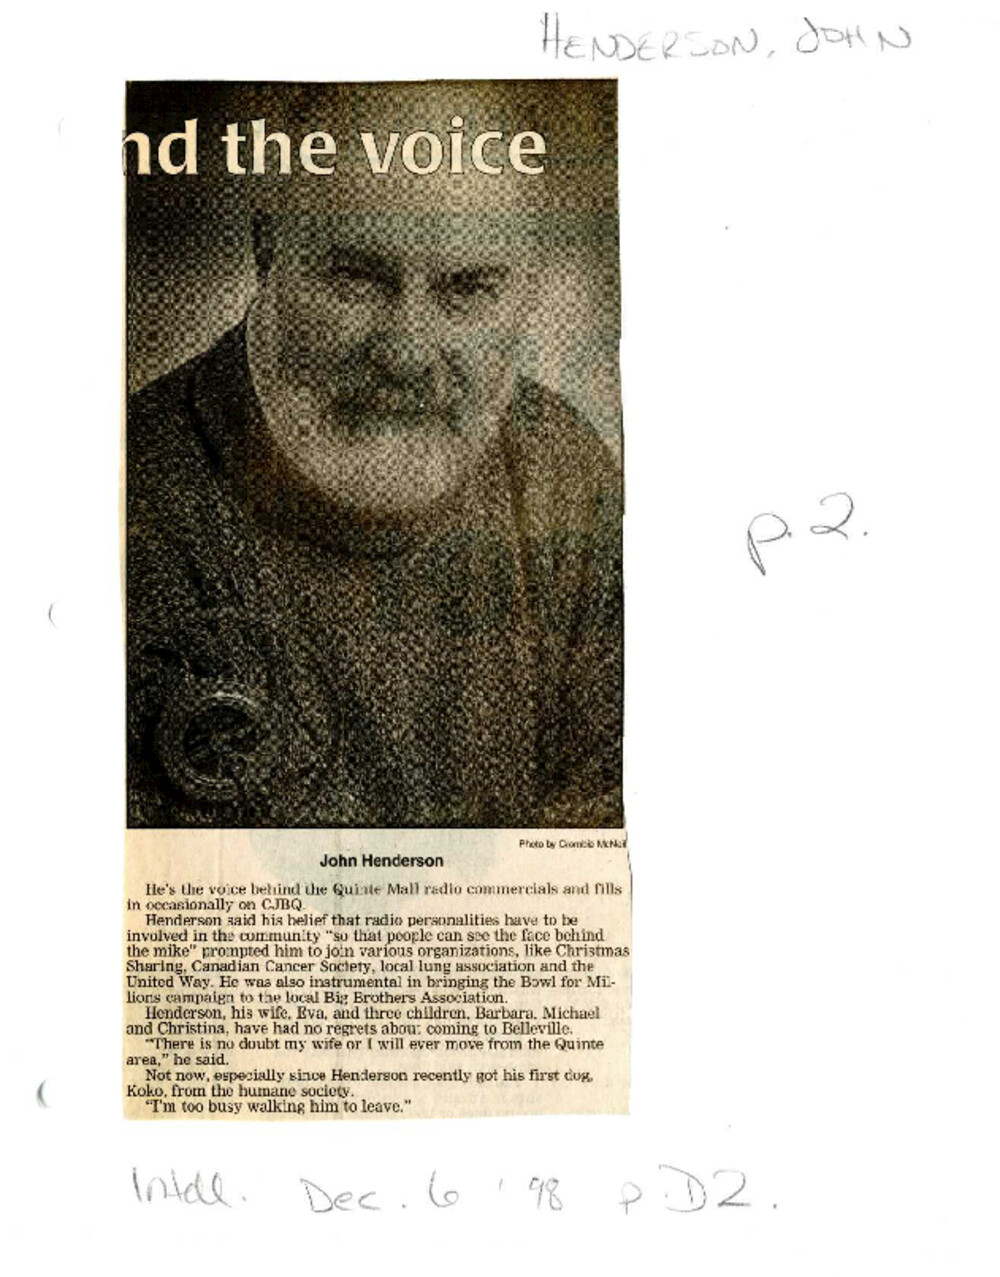 The man behind the voice